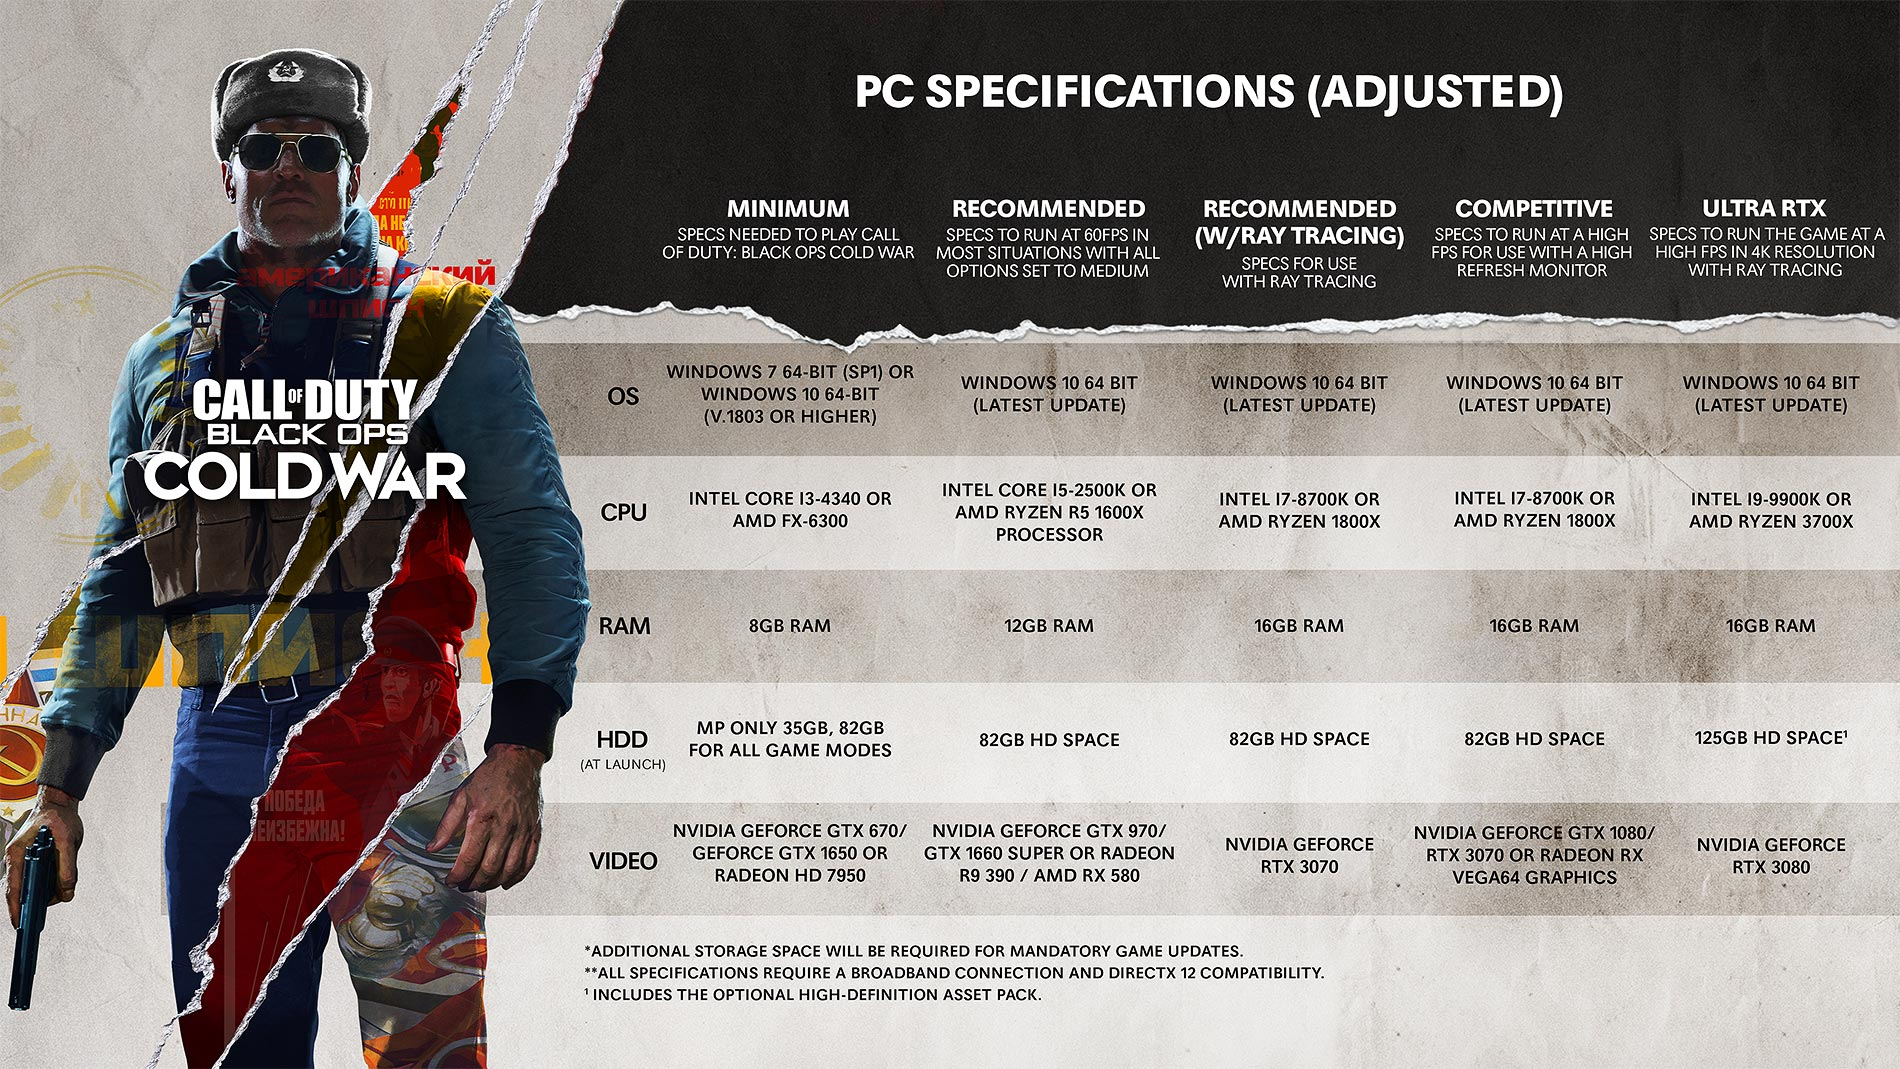 Expansive Customization Options